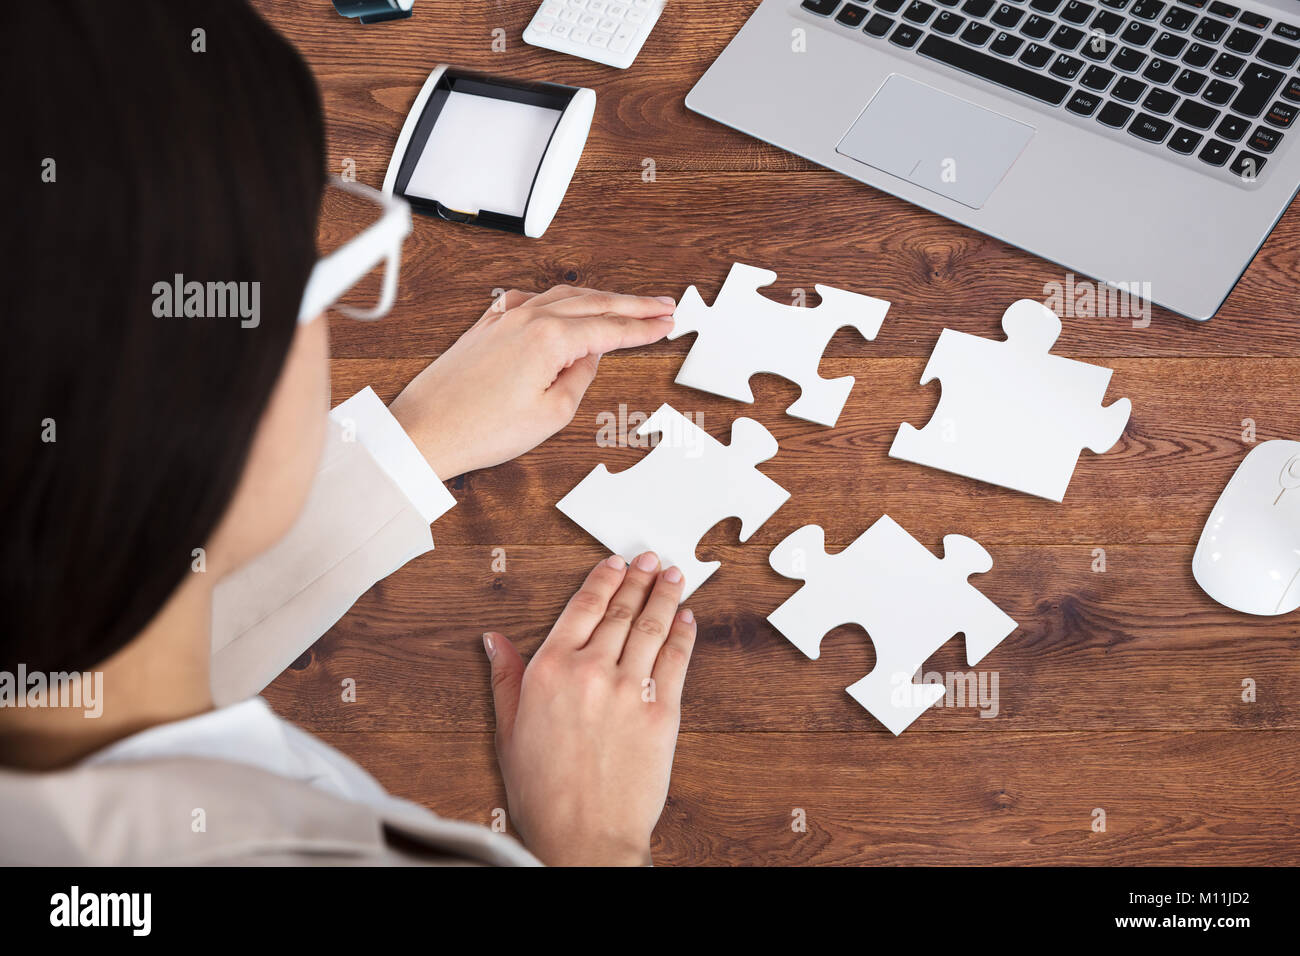 Jigsaw Puzzle Making Hand Stock Photos & Jigsaw Puzzle